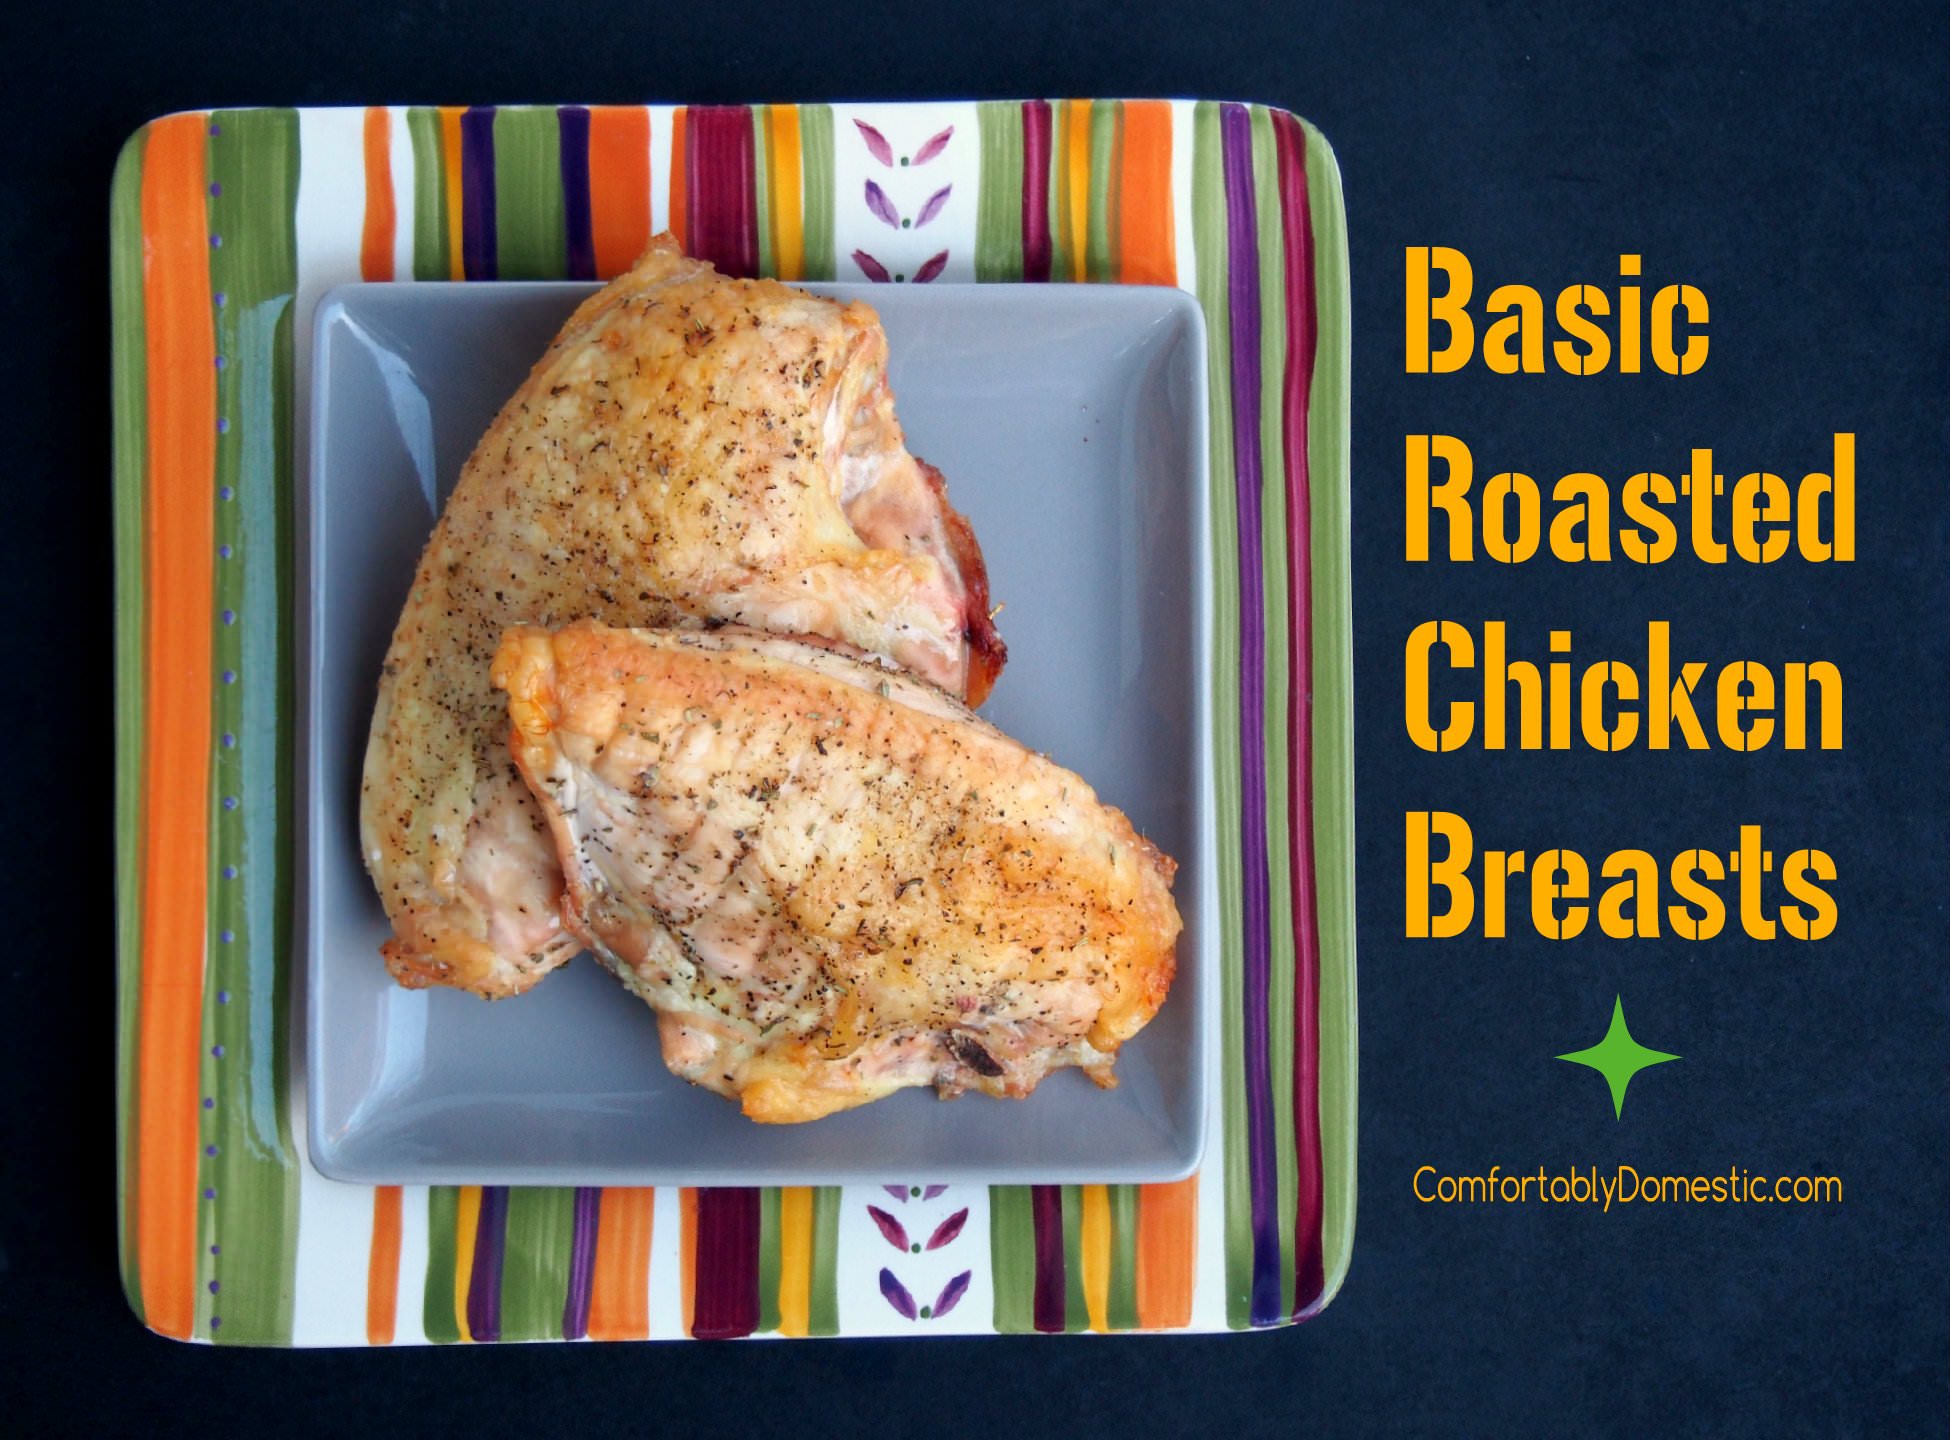 Roasted-Bone-In-Chicken-Breasts | ComfortablyDomestic.com